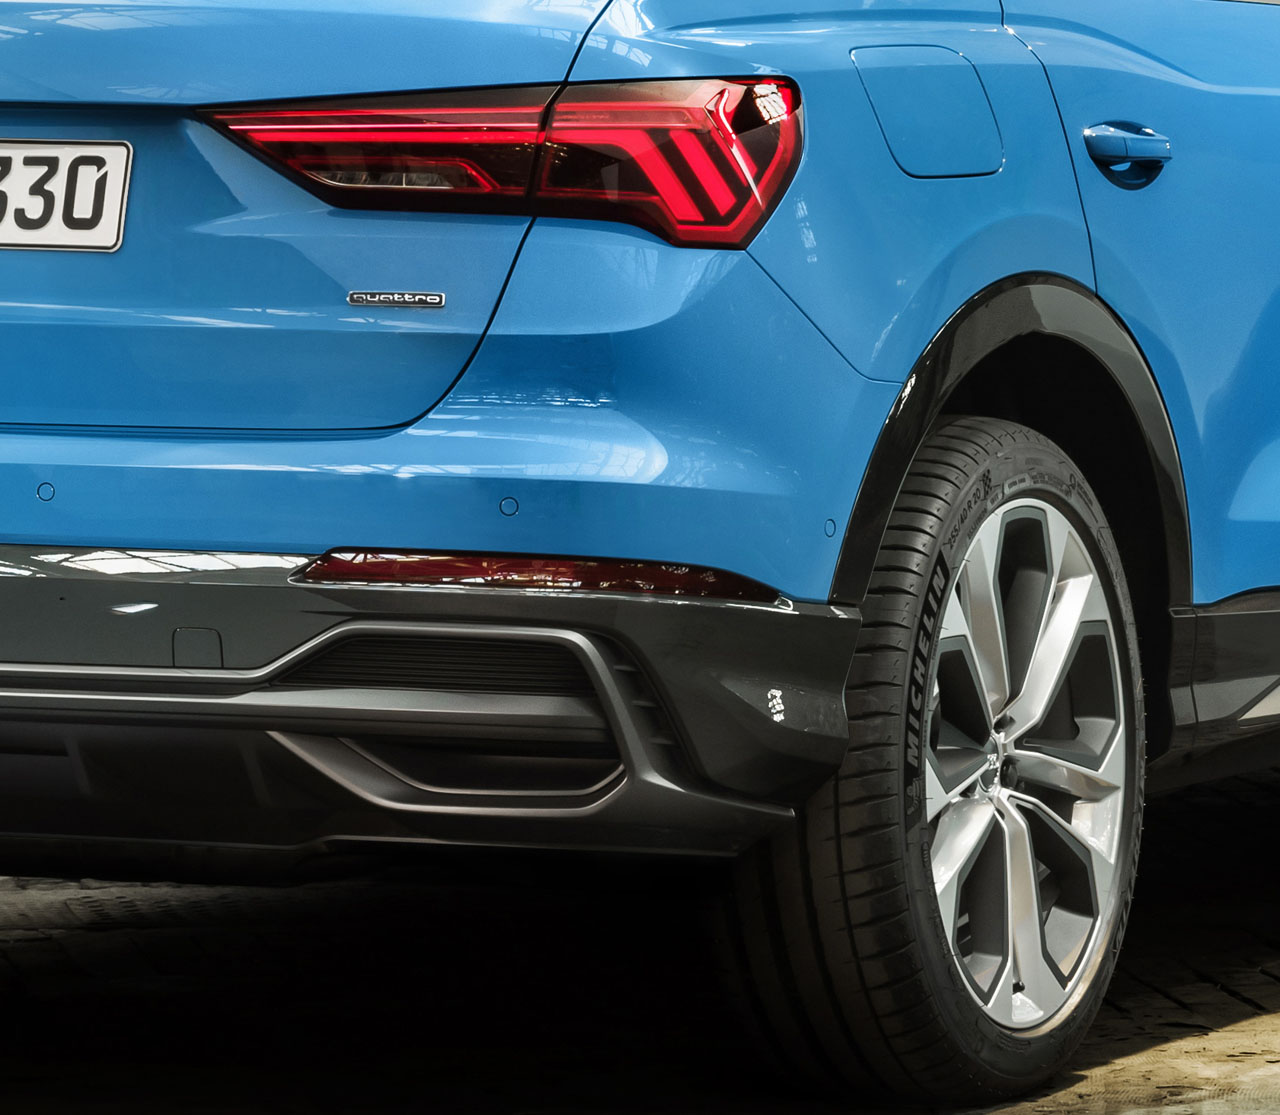 2019 Audi Q3: 2019 Audi Q3 Adds Style, Size And Tech